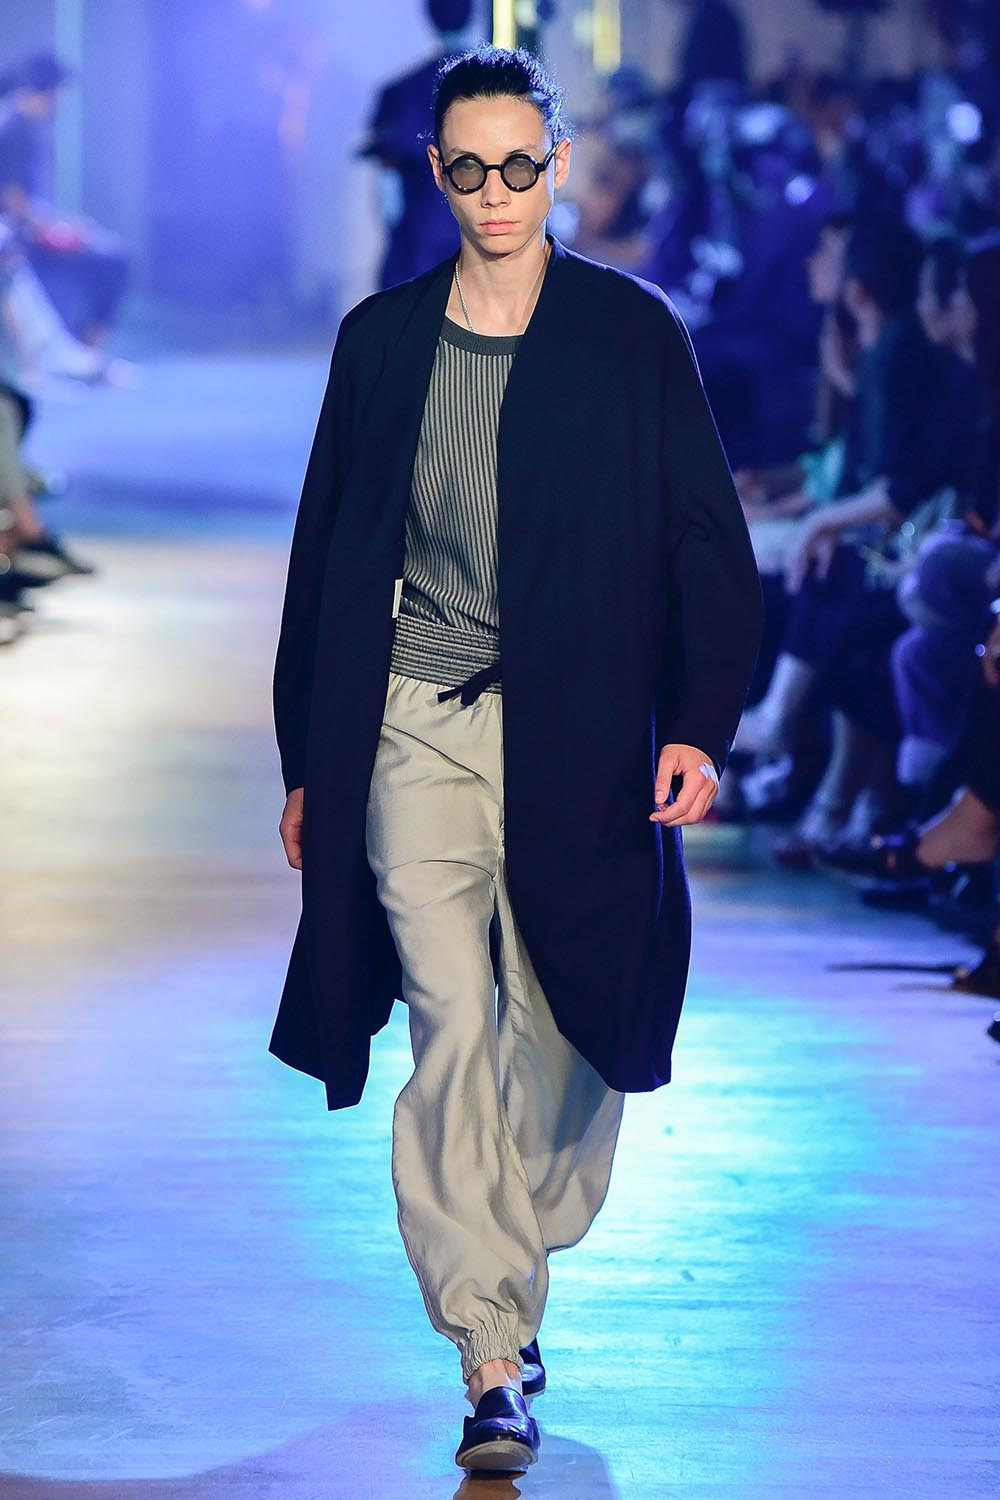 Cerruti 1881 Paris Fashion Week Men's SS19 - Sagaboi - Look 22